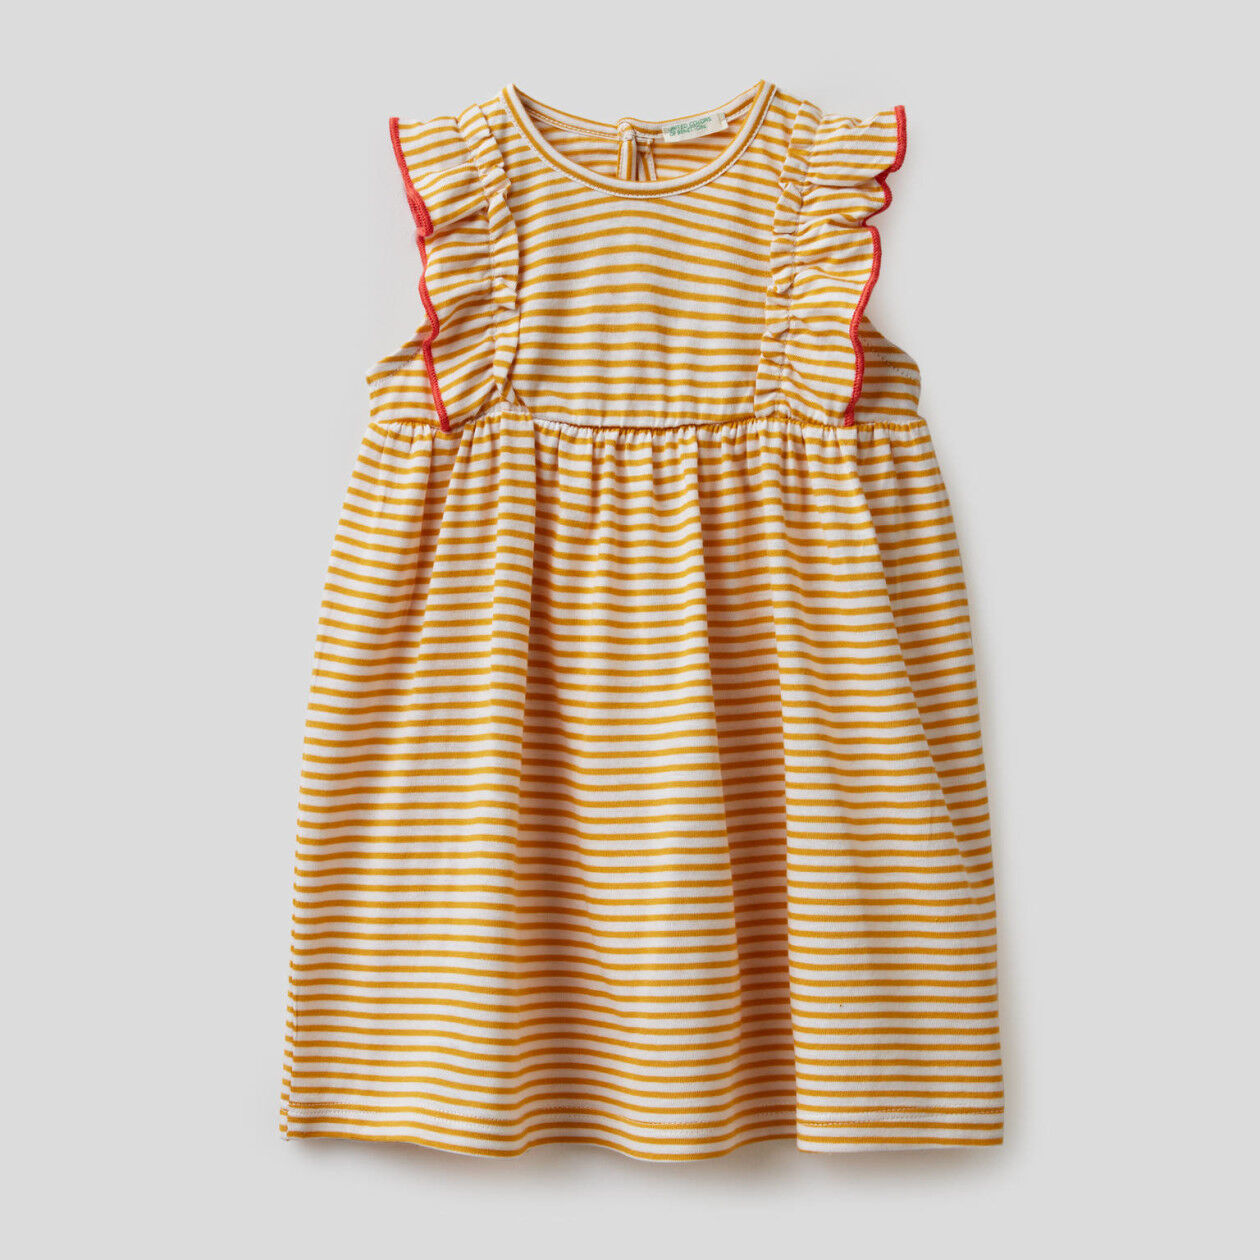 Striped dress in 100% organic cotton